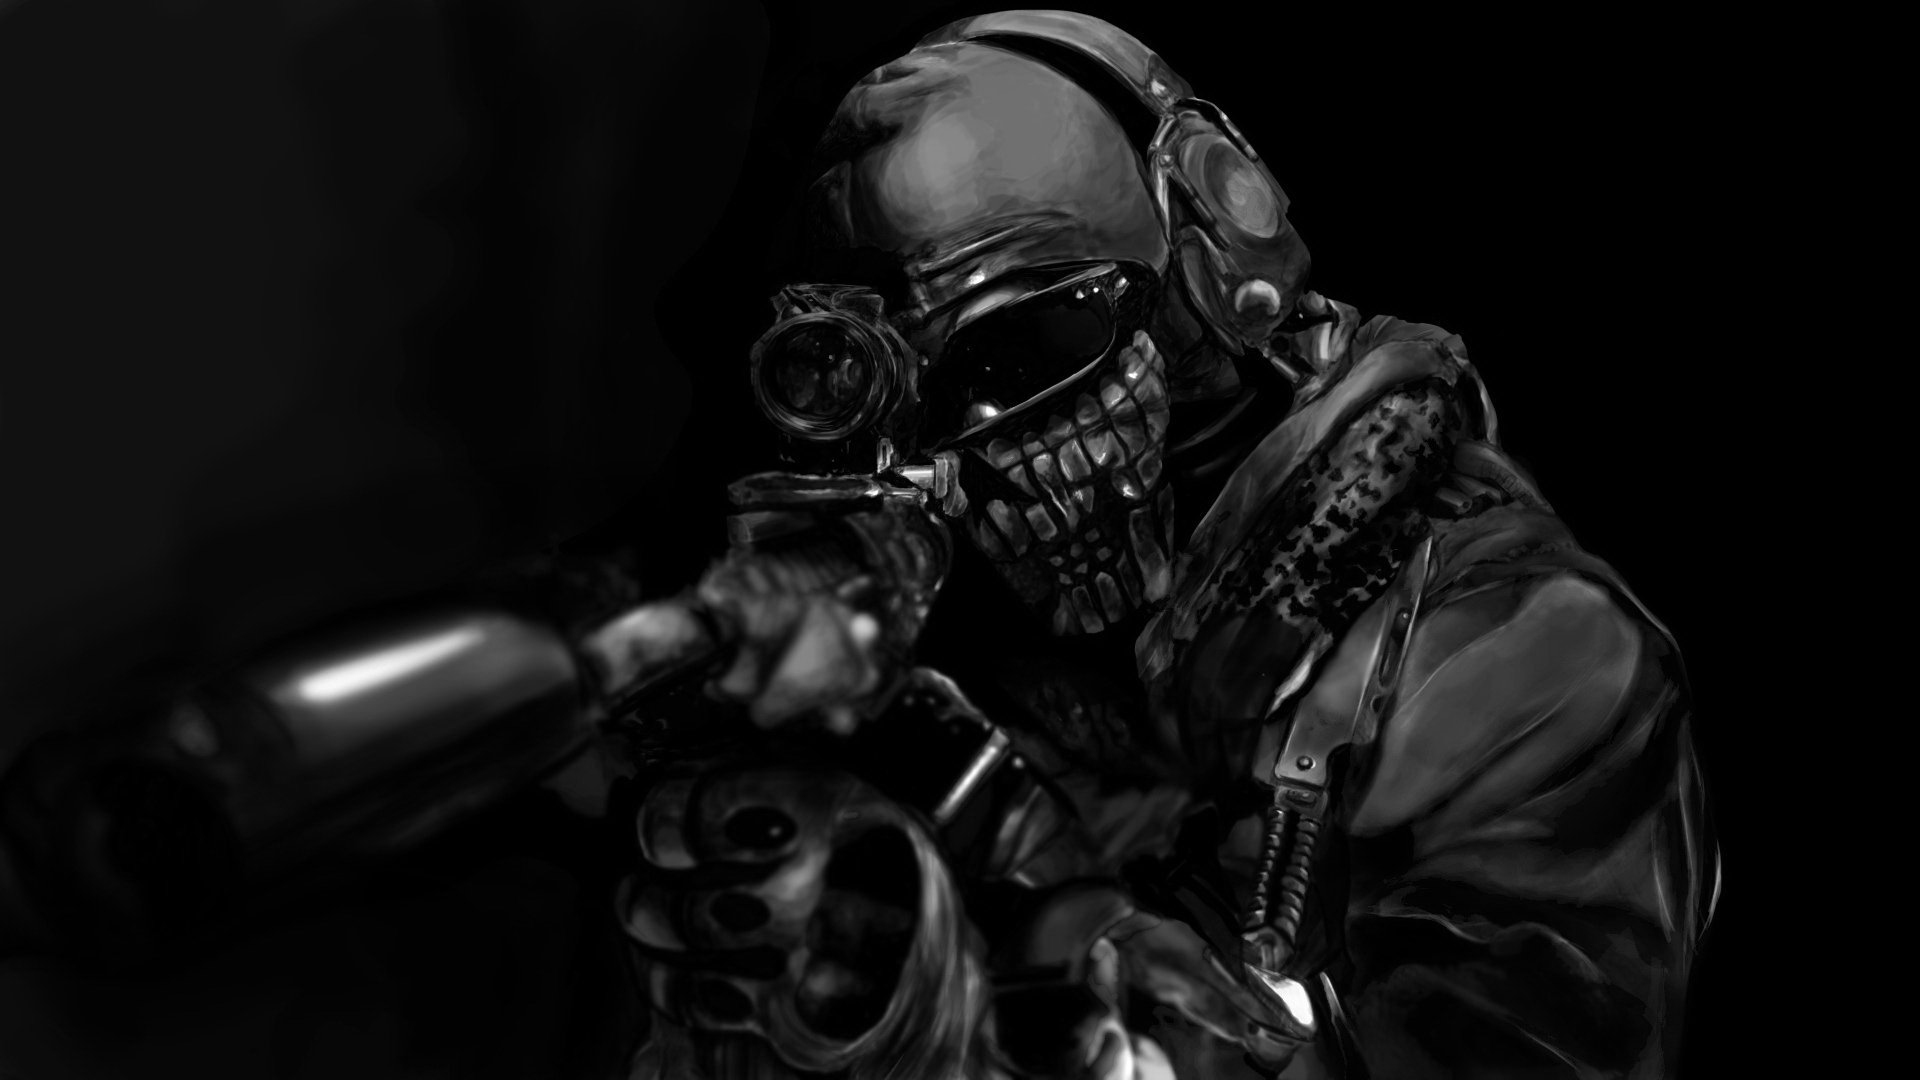 Call-Of-Duty-Ghosts-Activision-Xbox-One-PS-FUNK-GUMBO-RADIO-http-www-live-com-statio-wallpaper-wp3603848